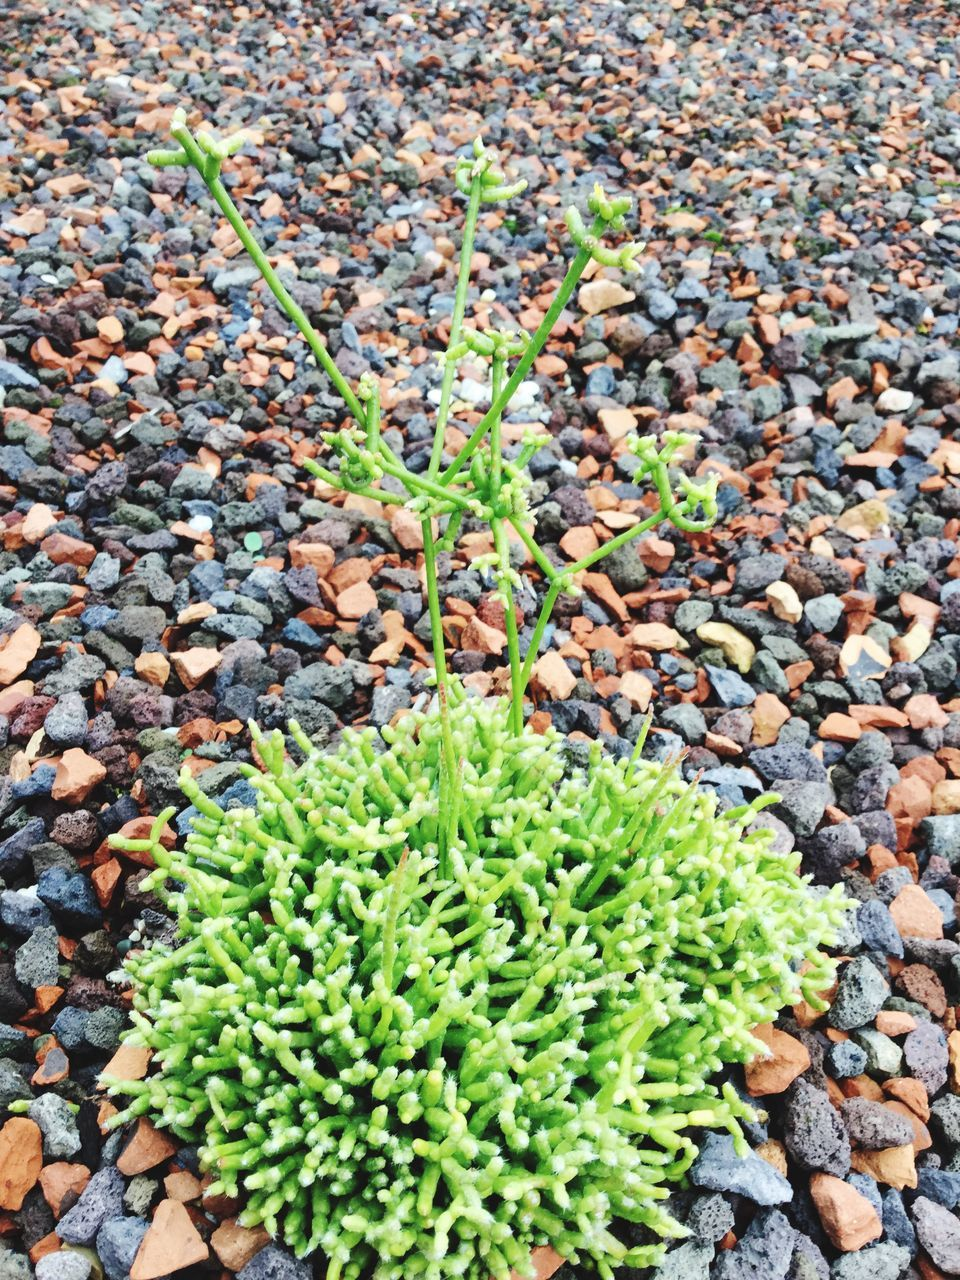 green color, nature, growth, day, outdoors, high angle view, no people, plant, pebble, beauty in nature, close-up, freshness